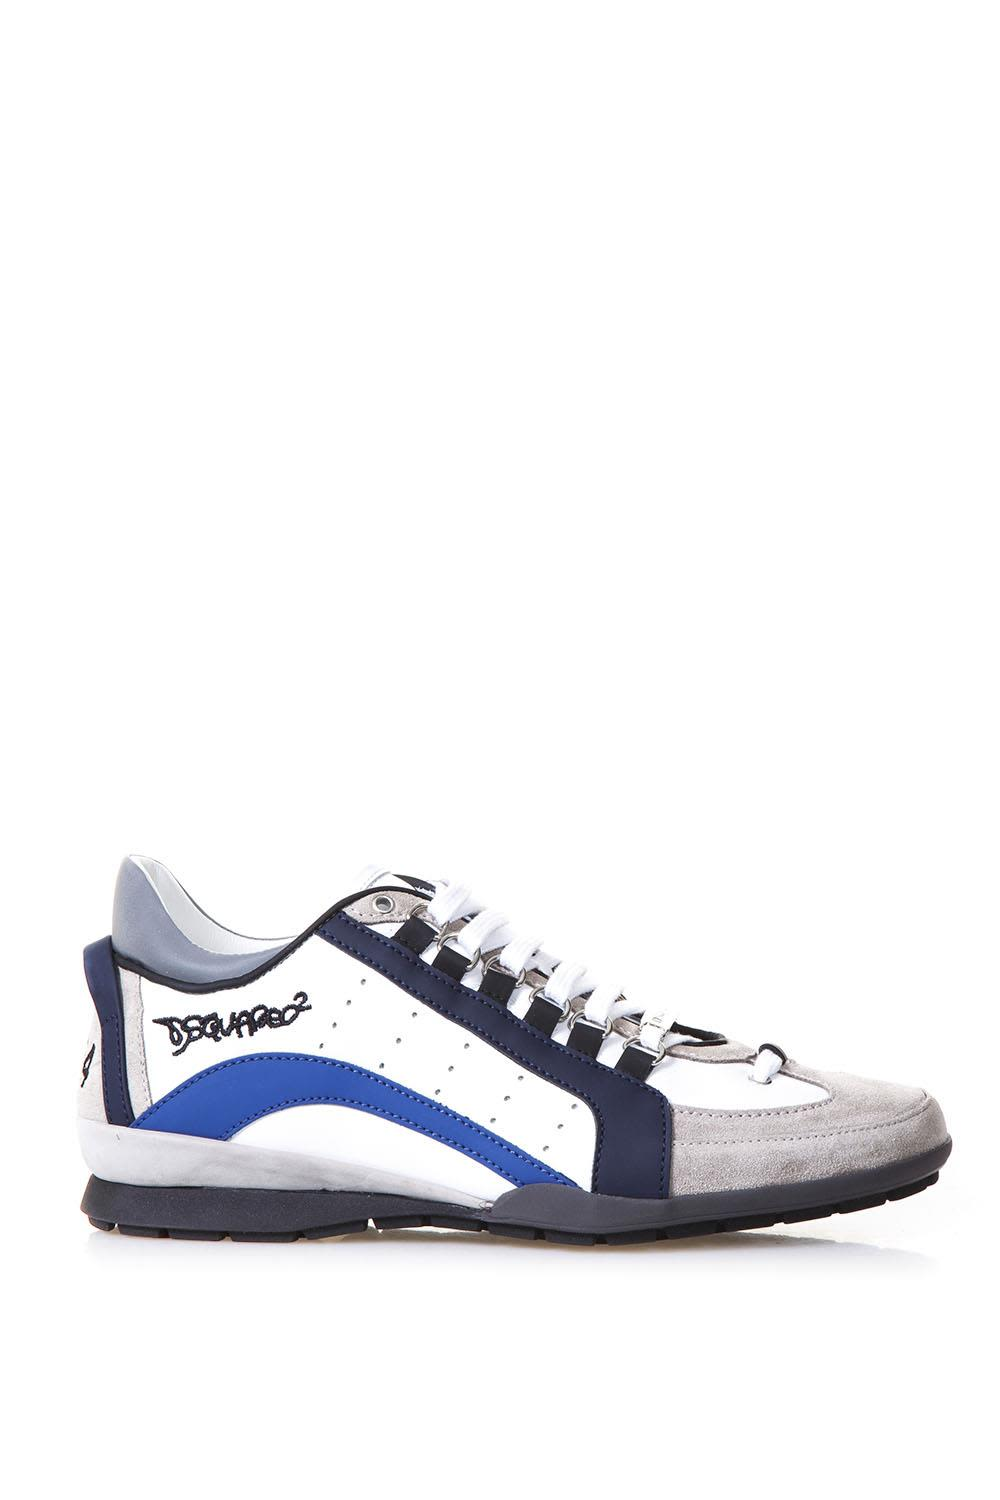 Dsquared2 551 White & Blu Leather Sneakers